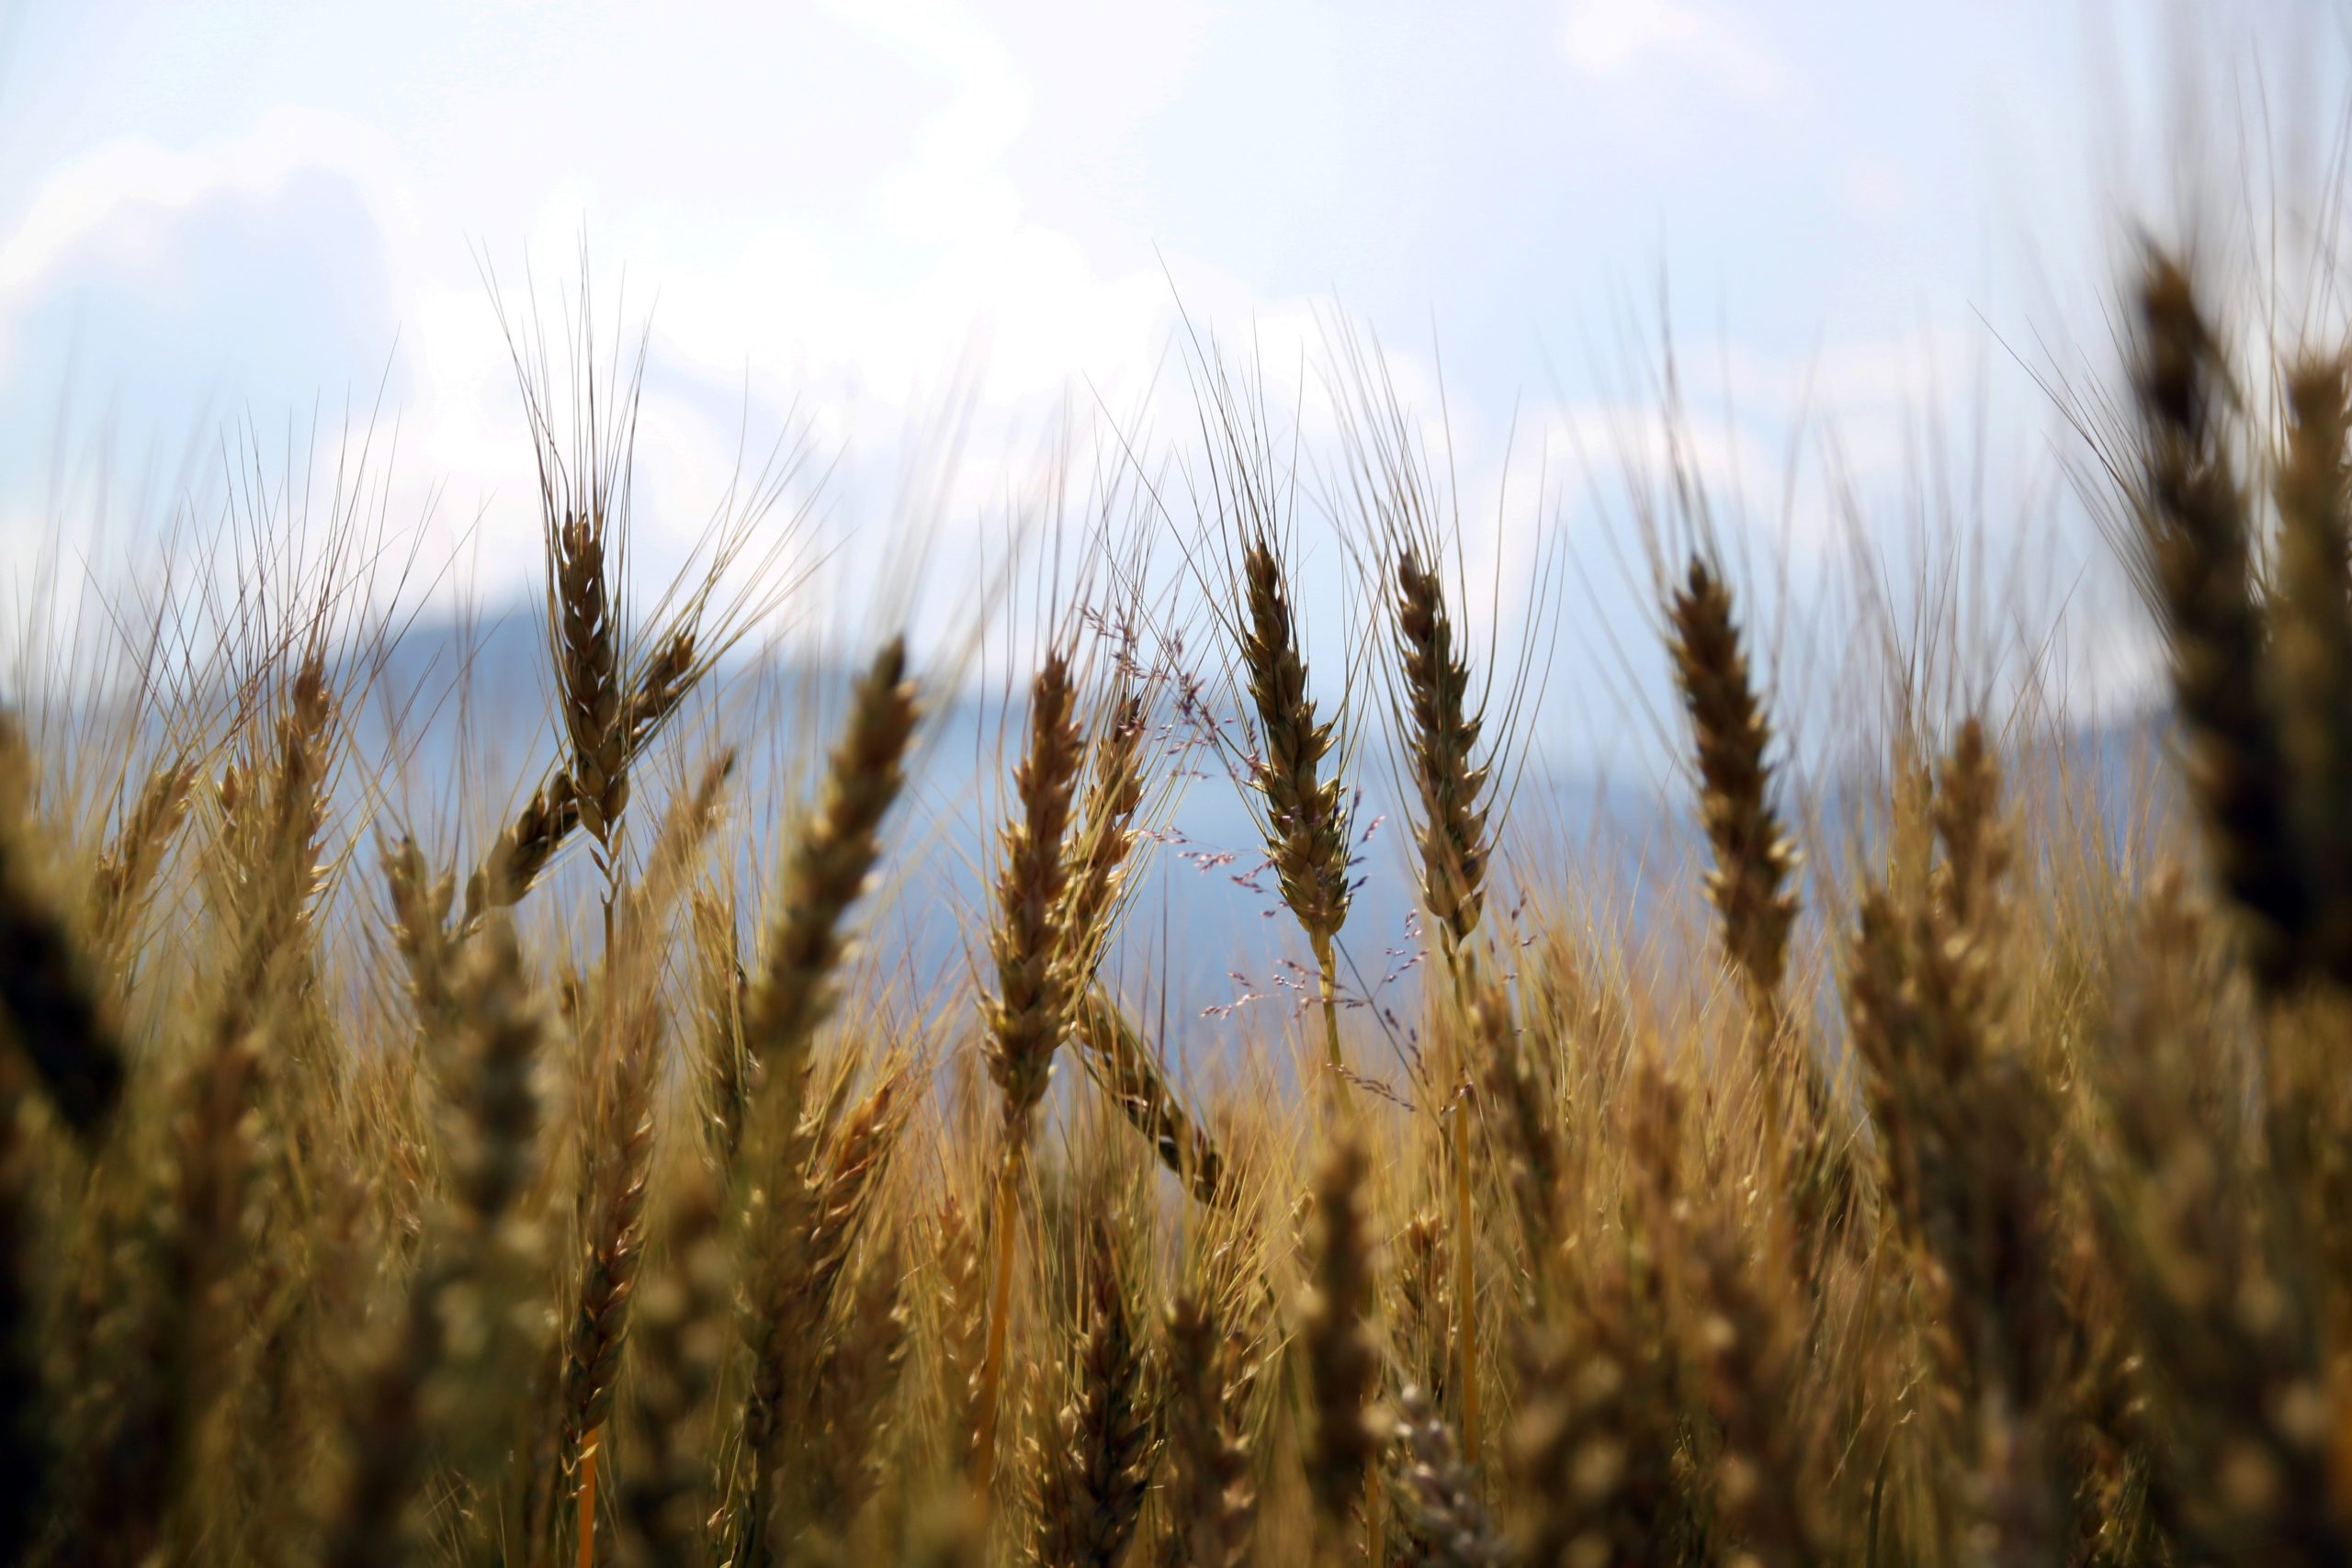 You can try wheat and barley to remove facial hair if your skin isn't too sensitive.